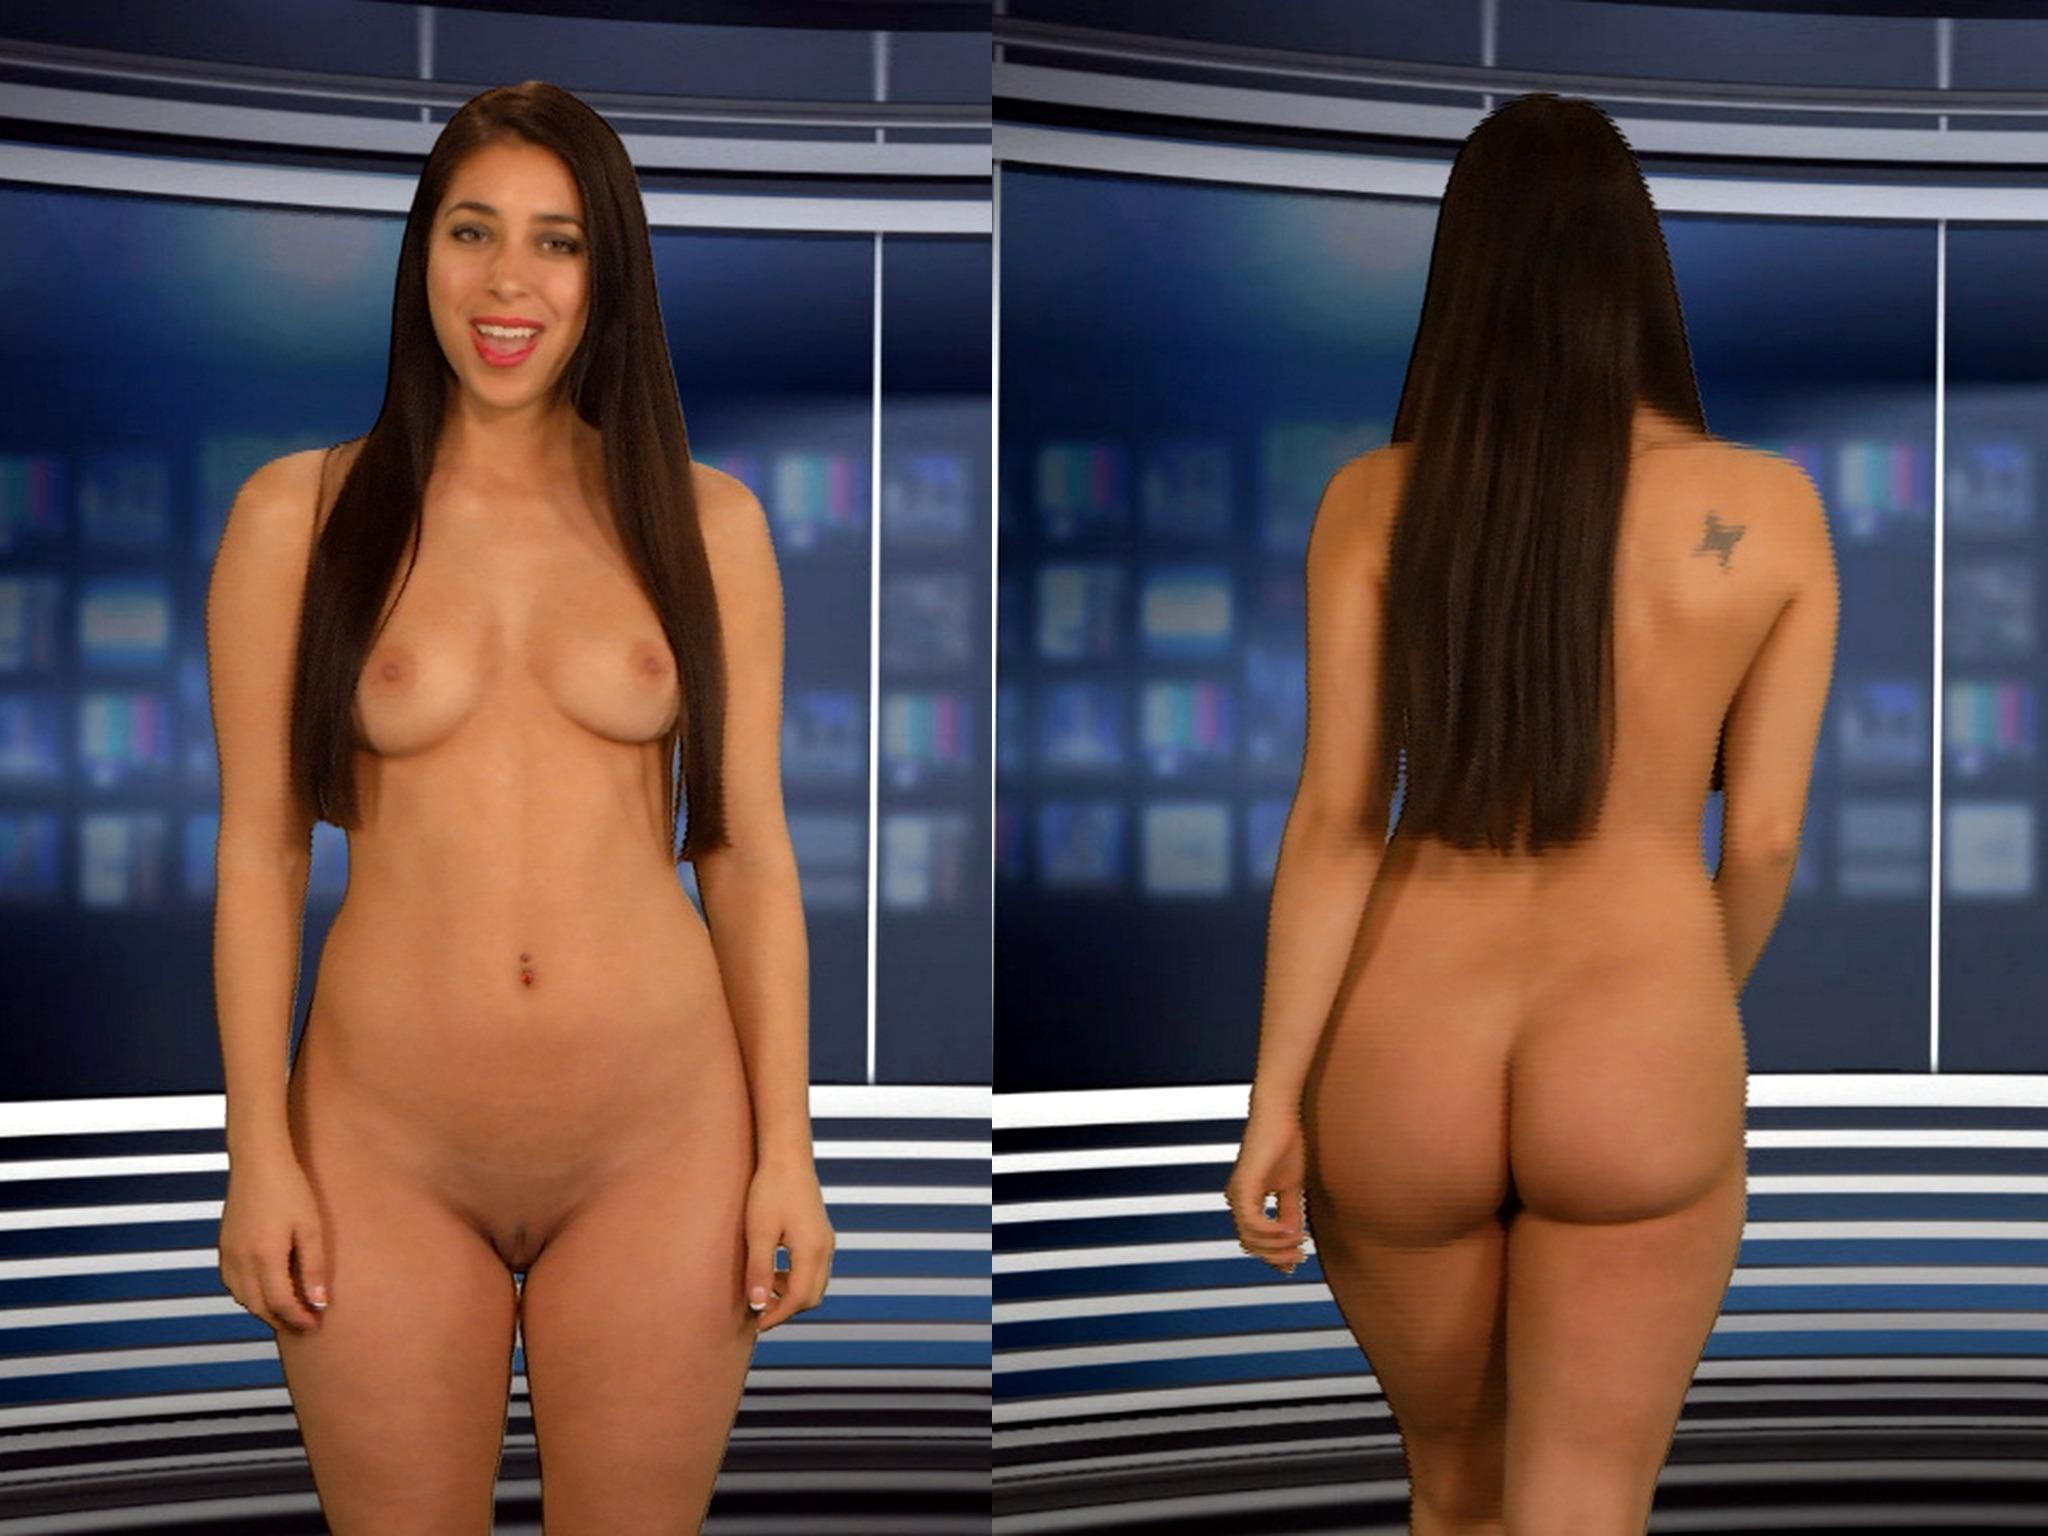 Naked News On Twitter Did You Know Our Isabella Rossini Has An Award Winning Backside See For Yourself On Todays Show T Co Akellbrtp